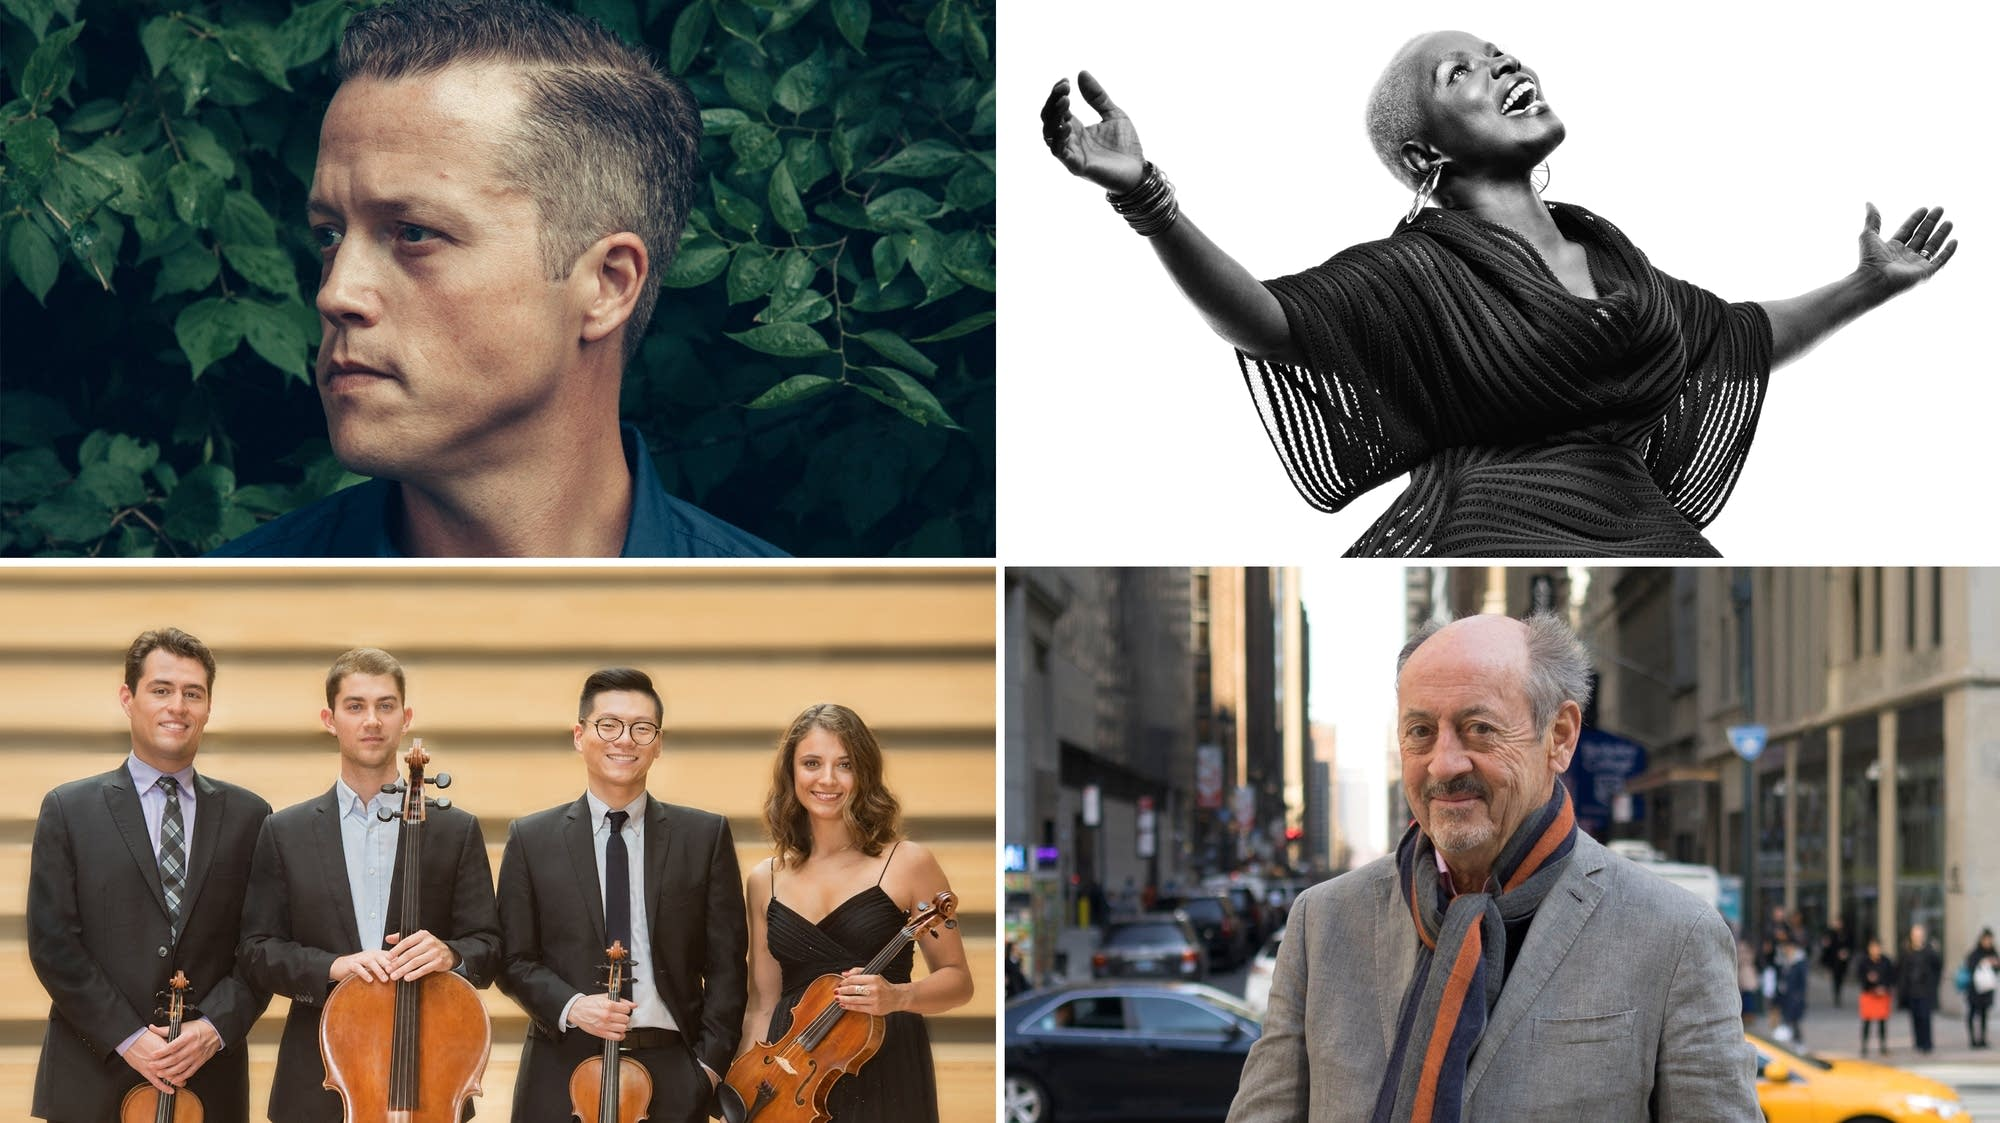 Jason Isbell, Angelique Kidjo, the Dover Quartet, Billy Collins